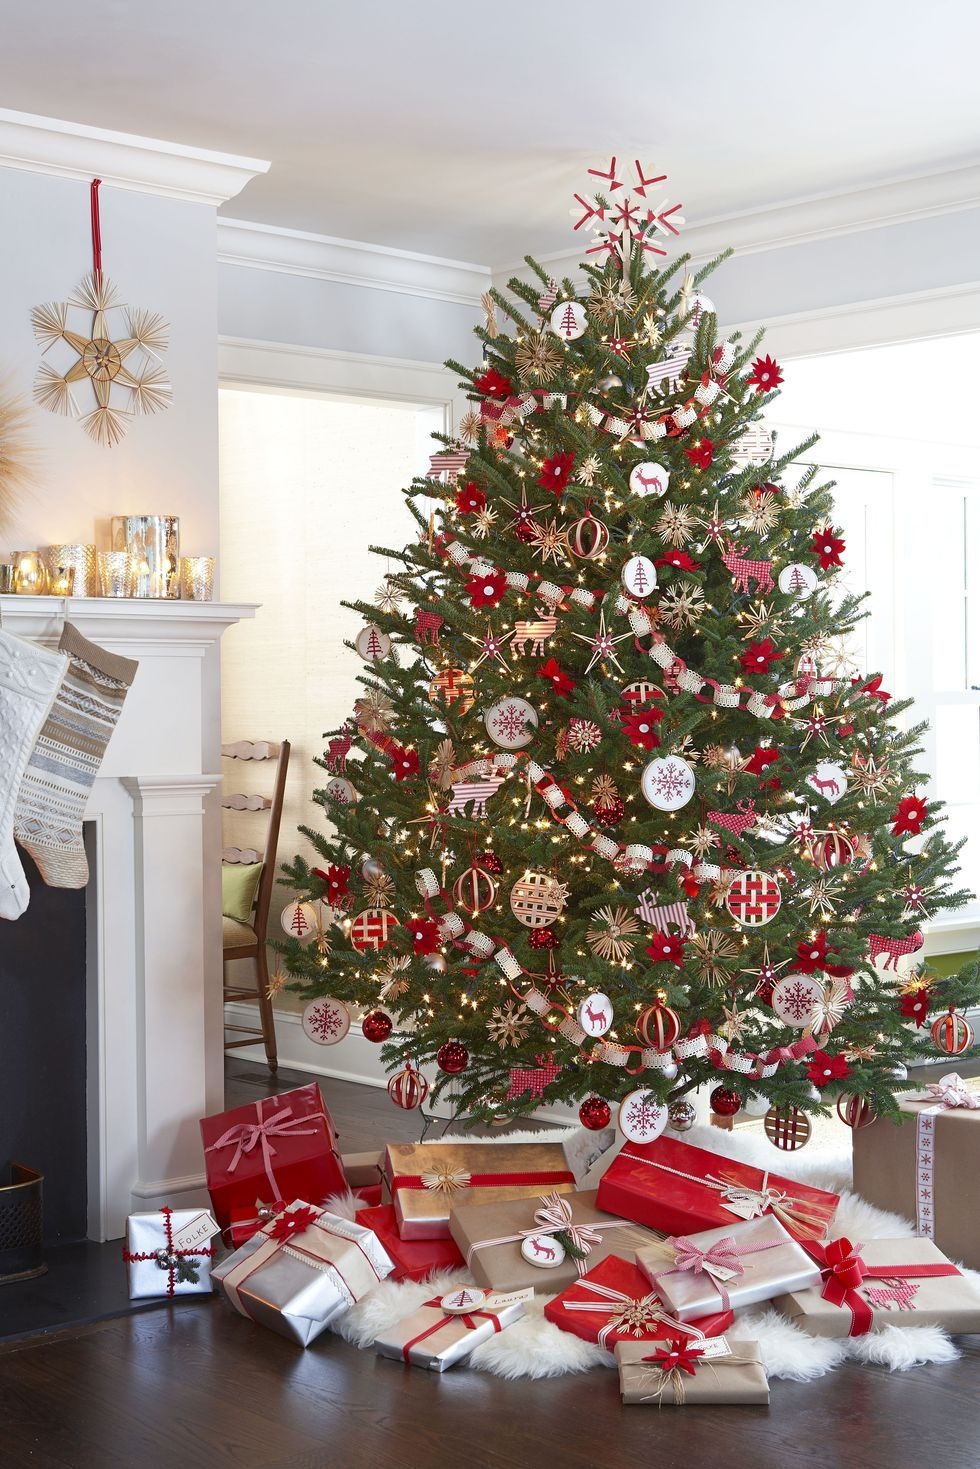 50 Christmas Tree Ideas That'll Really Make a Statement This Year